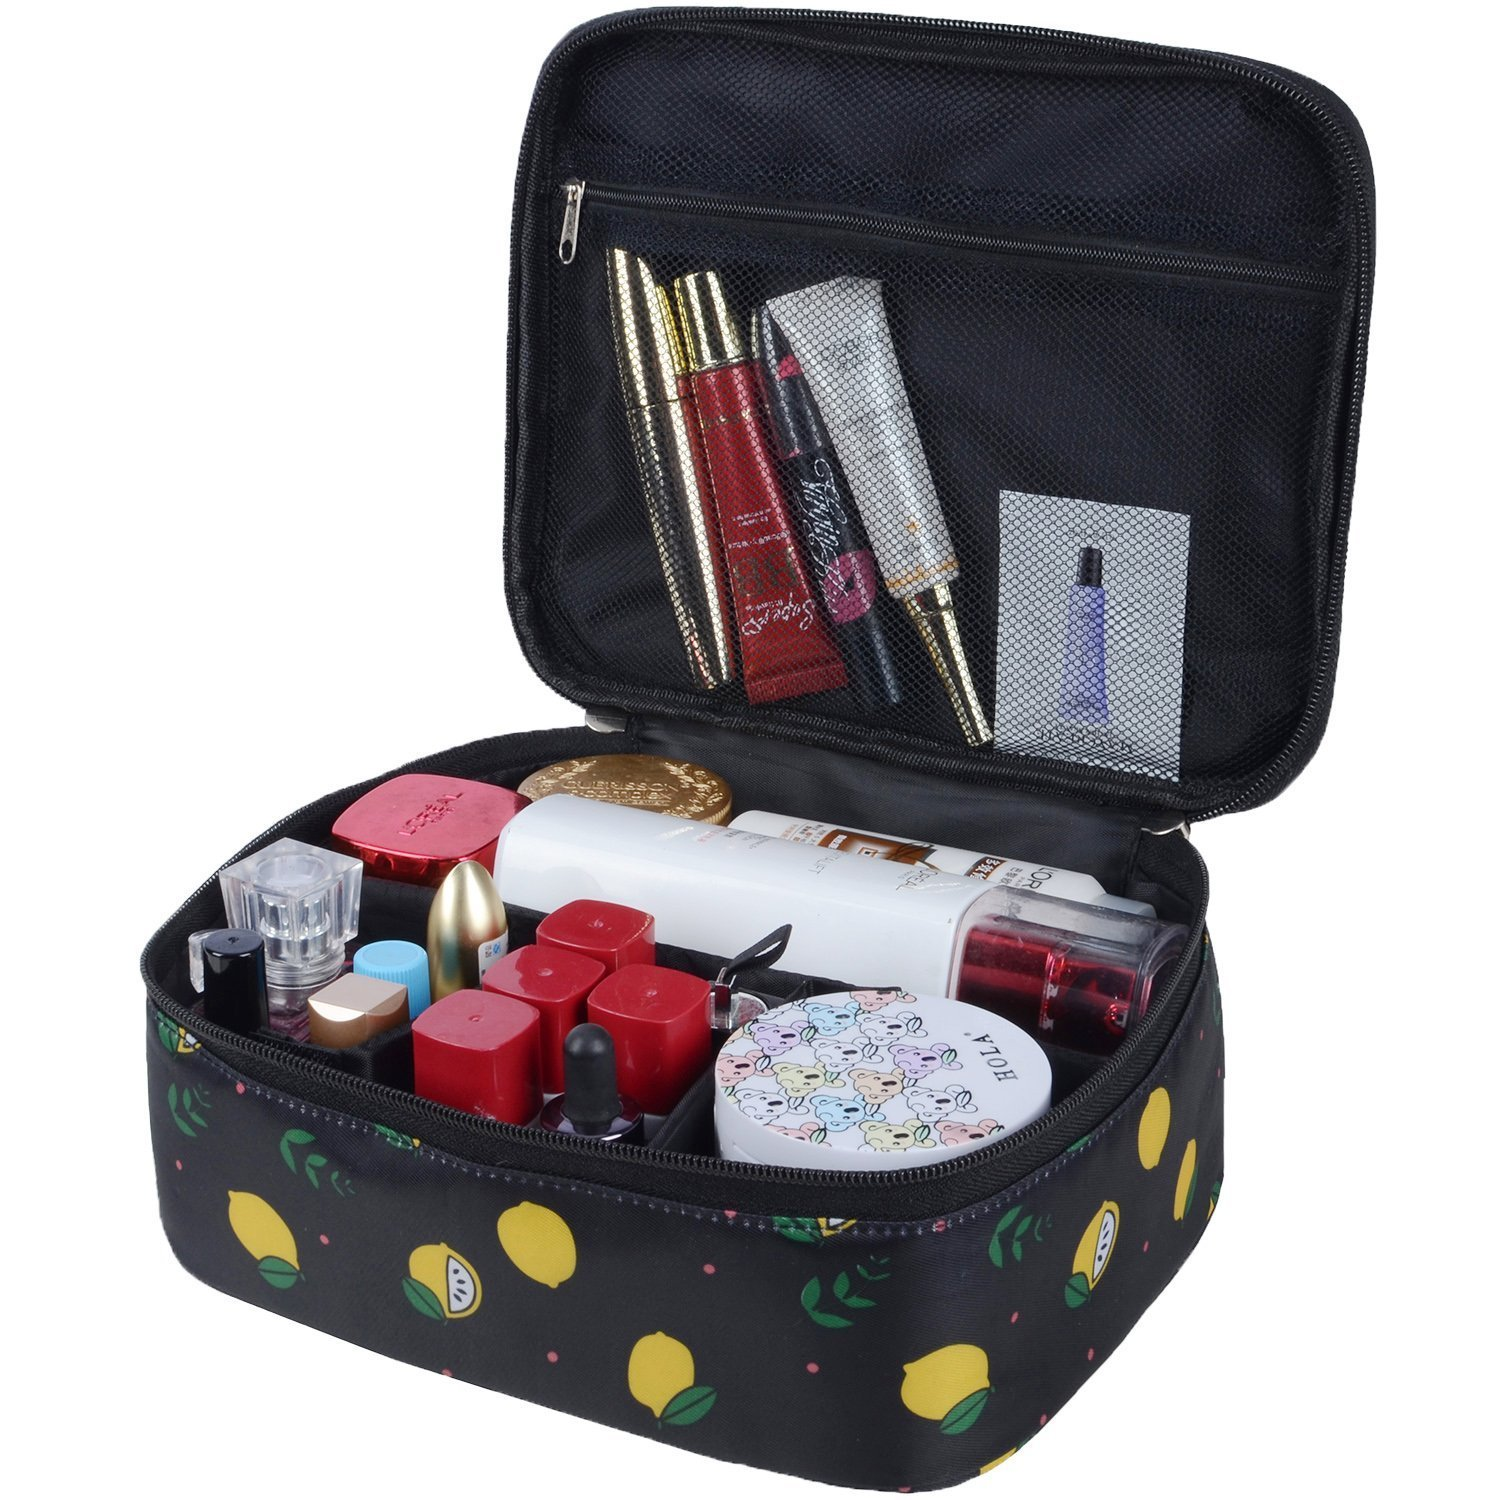 Portable Travel Make up Bag Cosmetic Bags Toiletry Wash Bag Travel Makeup Case Pouch For Women (Color28) MKPCW